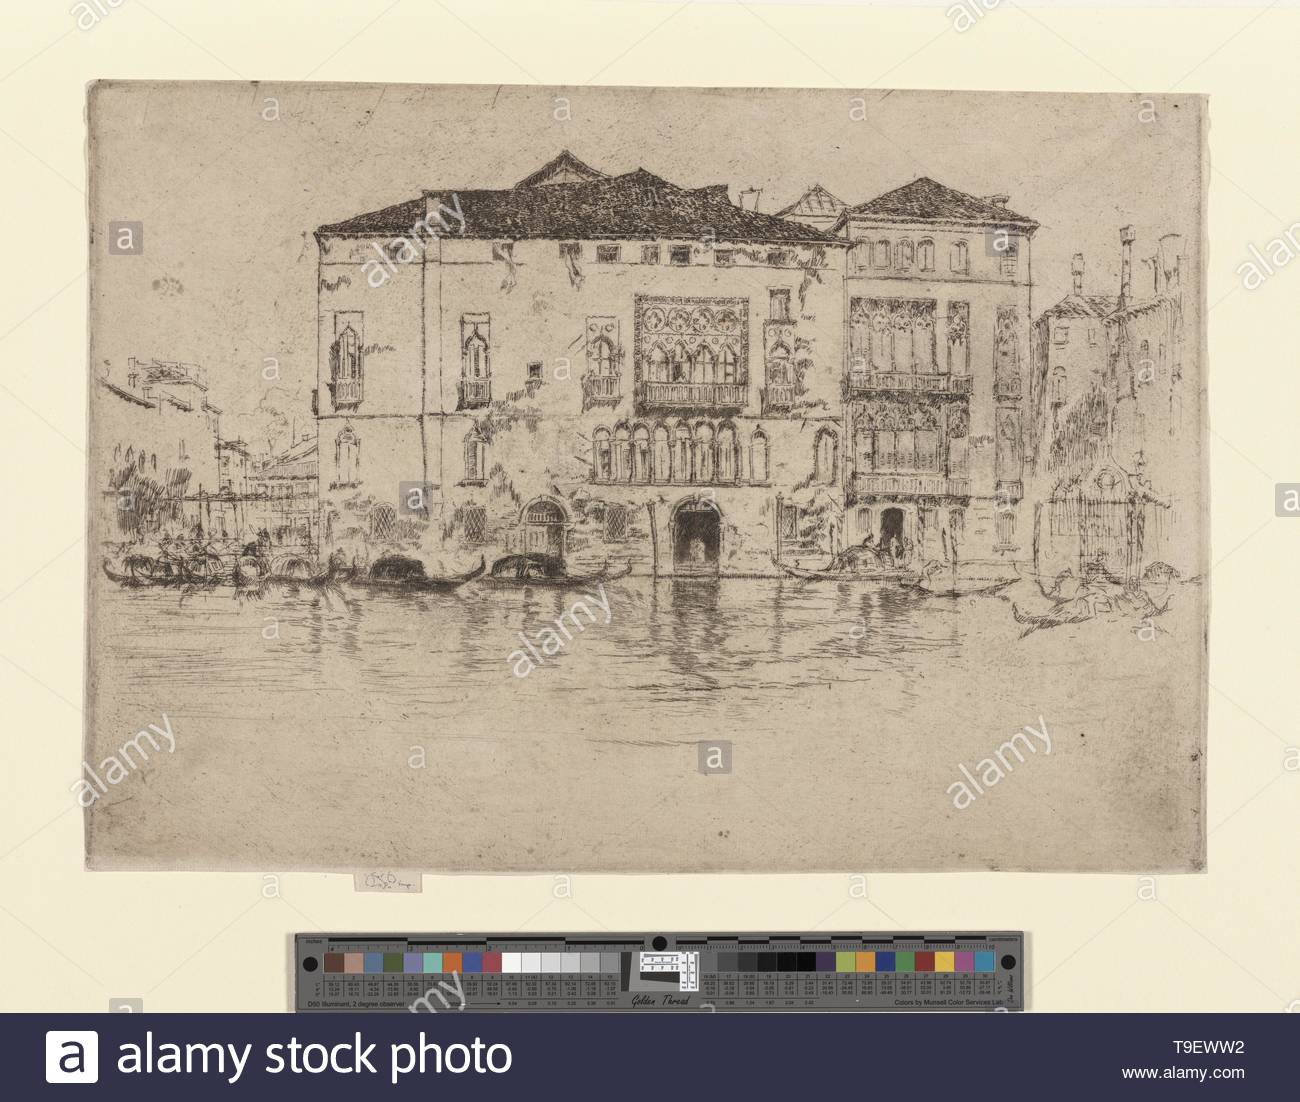 Whistler,JamesMcNeill(1834-1903)-The palaces - Stock Image